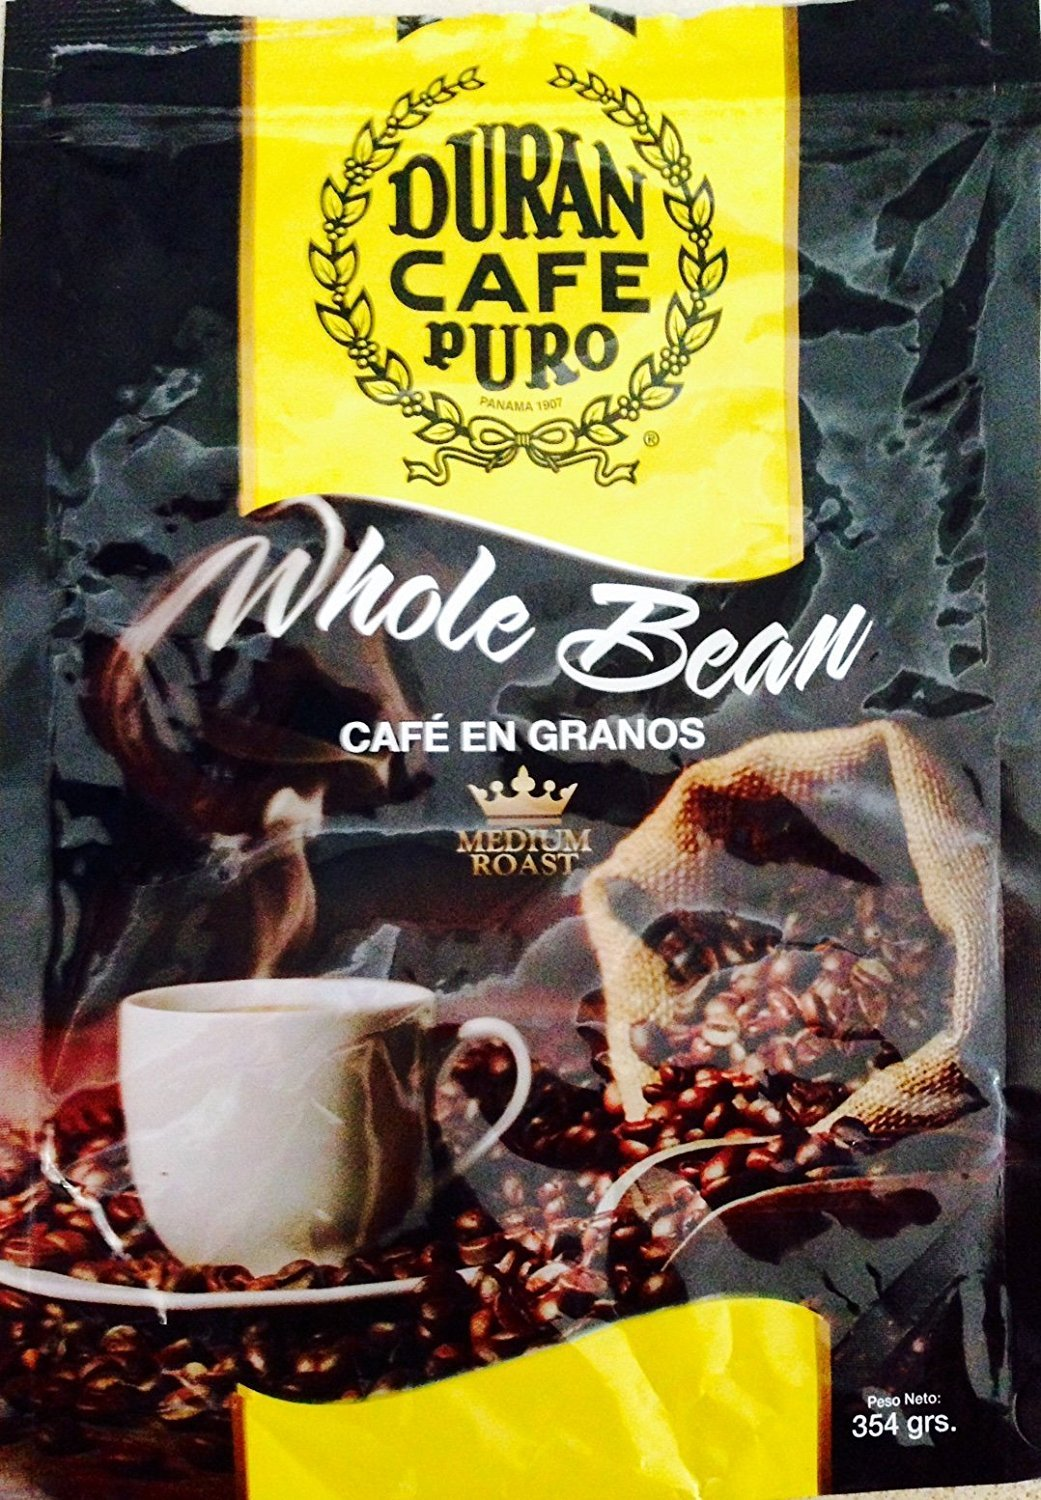 Café Duran Best Panama Whole Roasted Coffee Beans 360gr (12.7oz) Freshly Imported from